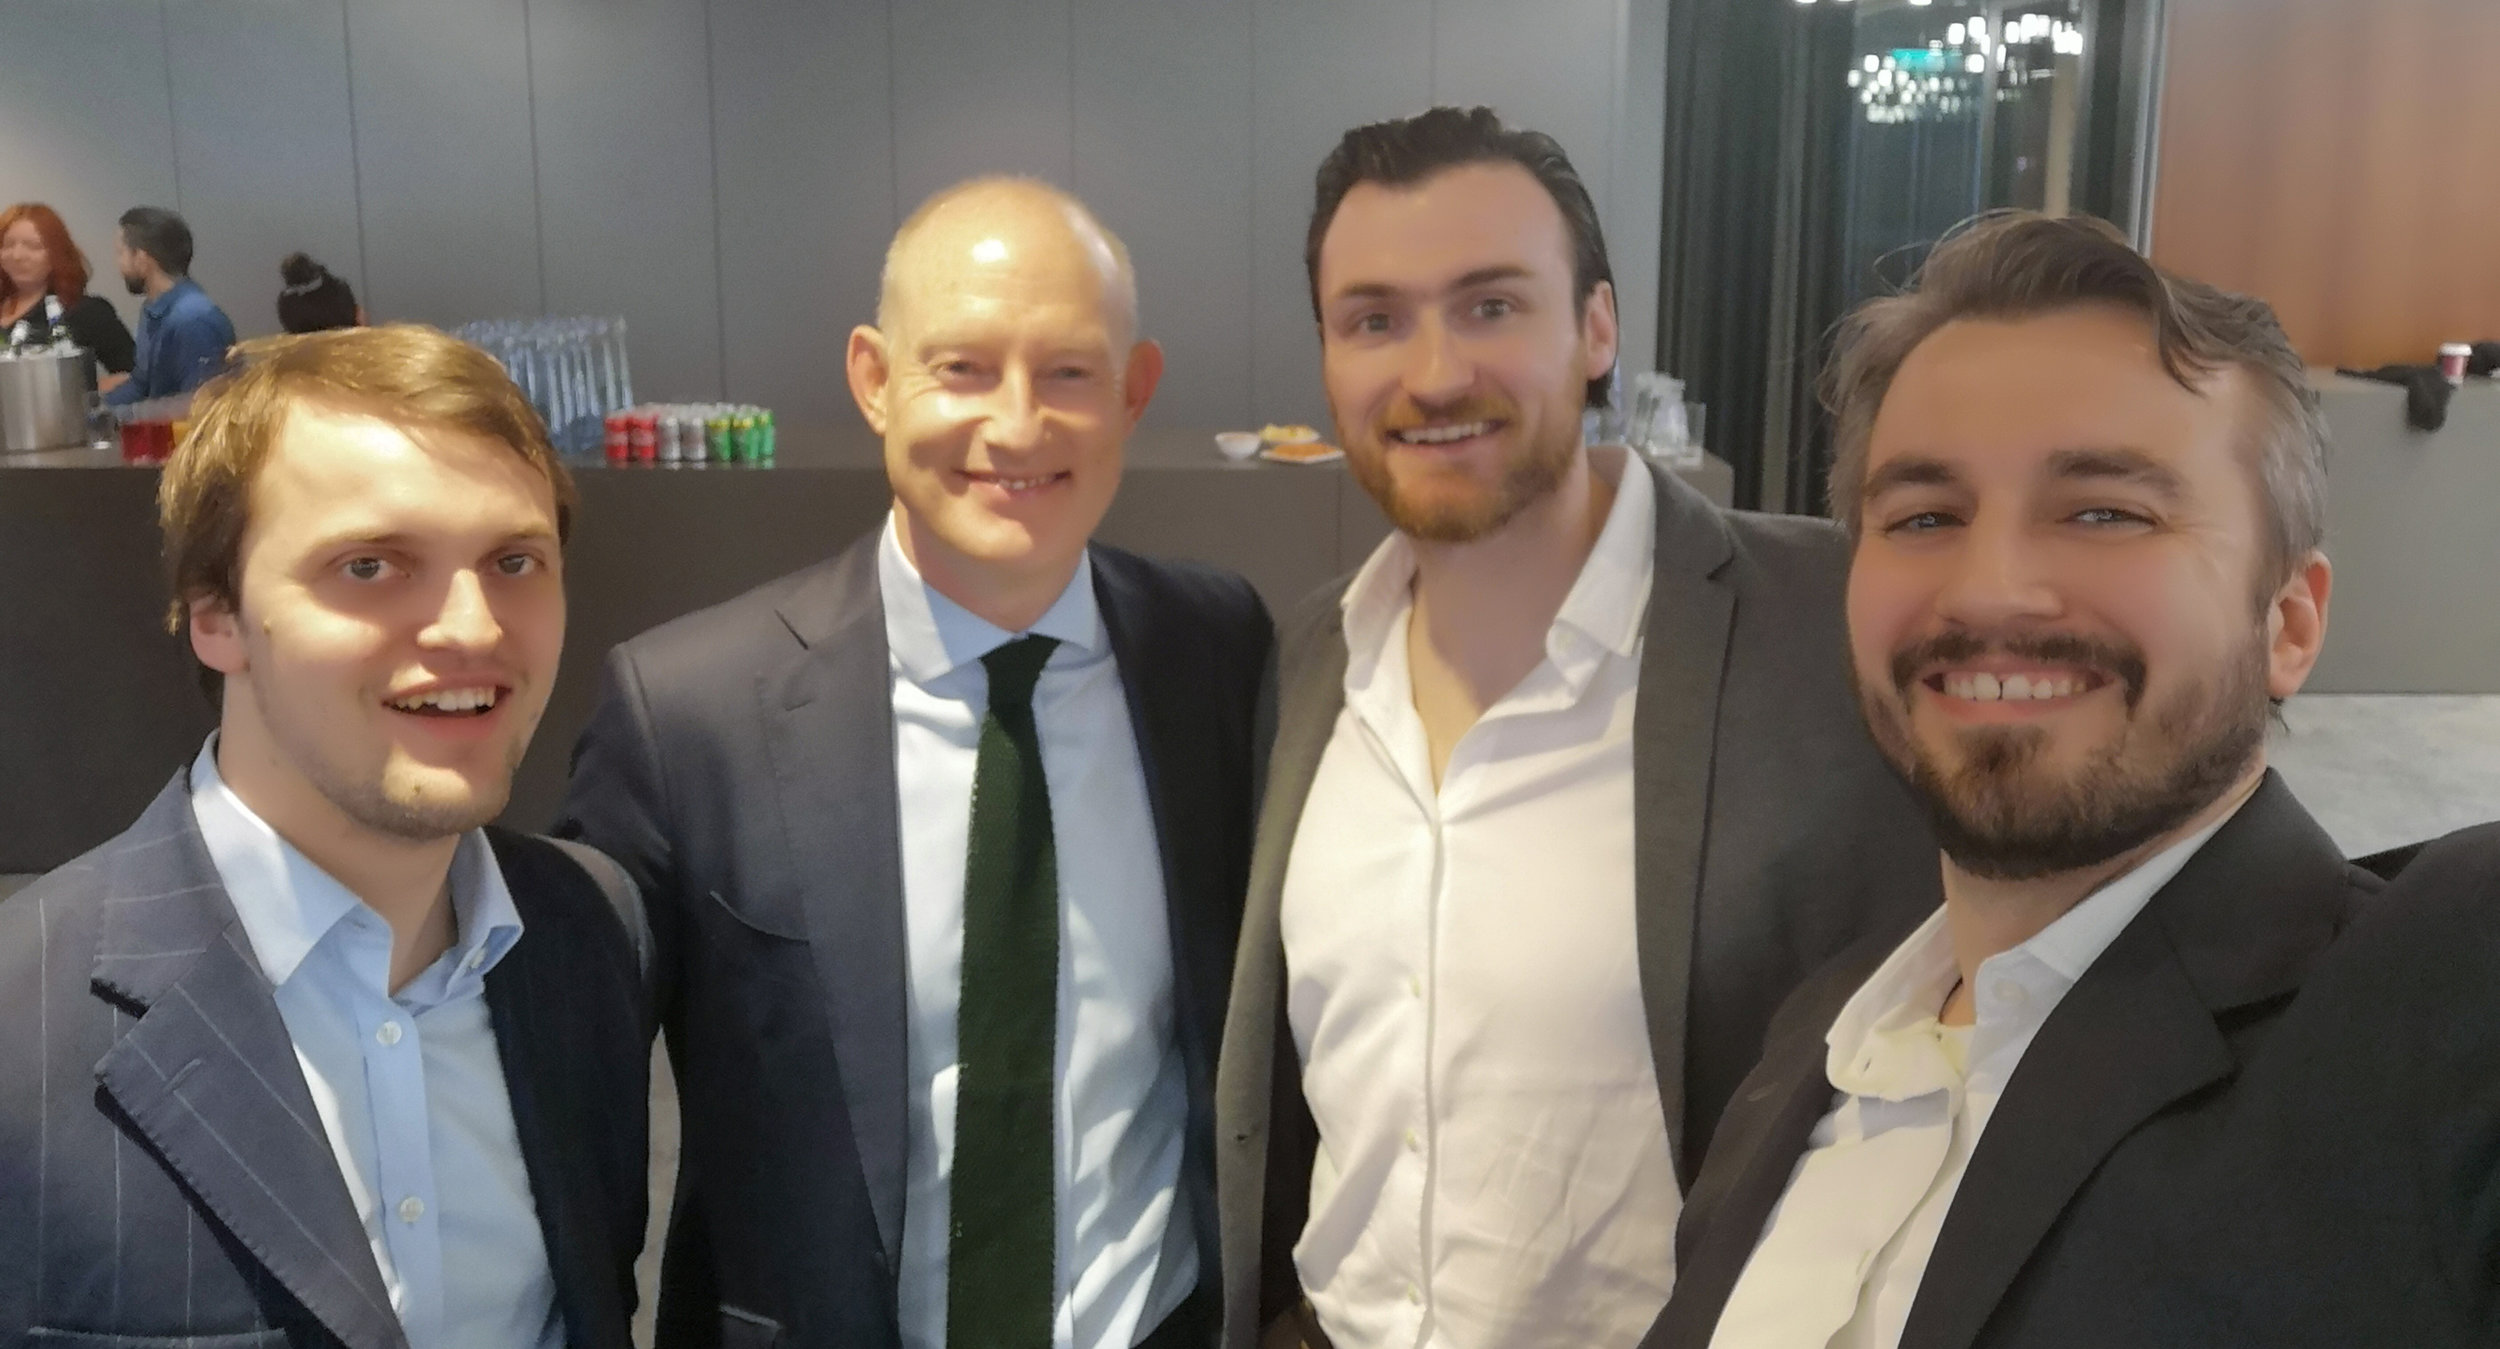 Limor CEO Shane Monahan with the lads from Thoburns